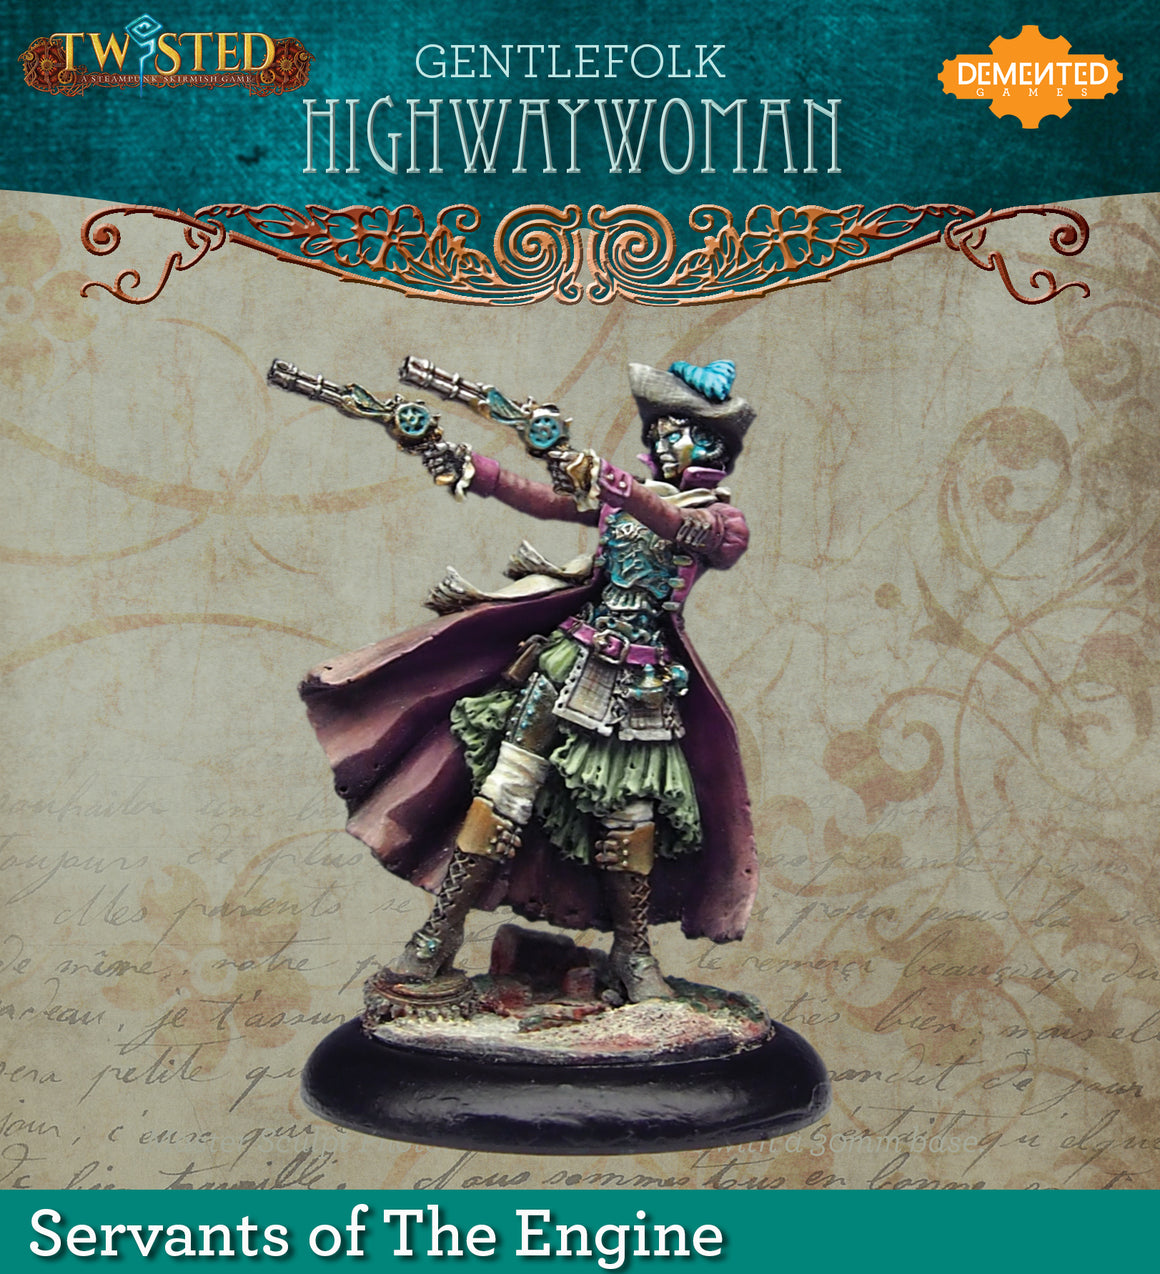 Gentlefolk Highwaywoman